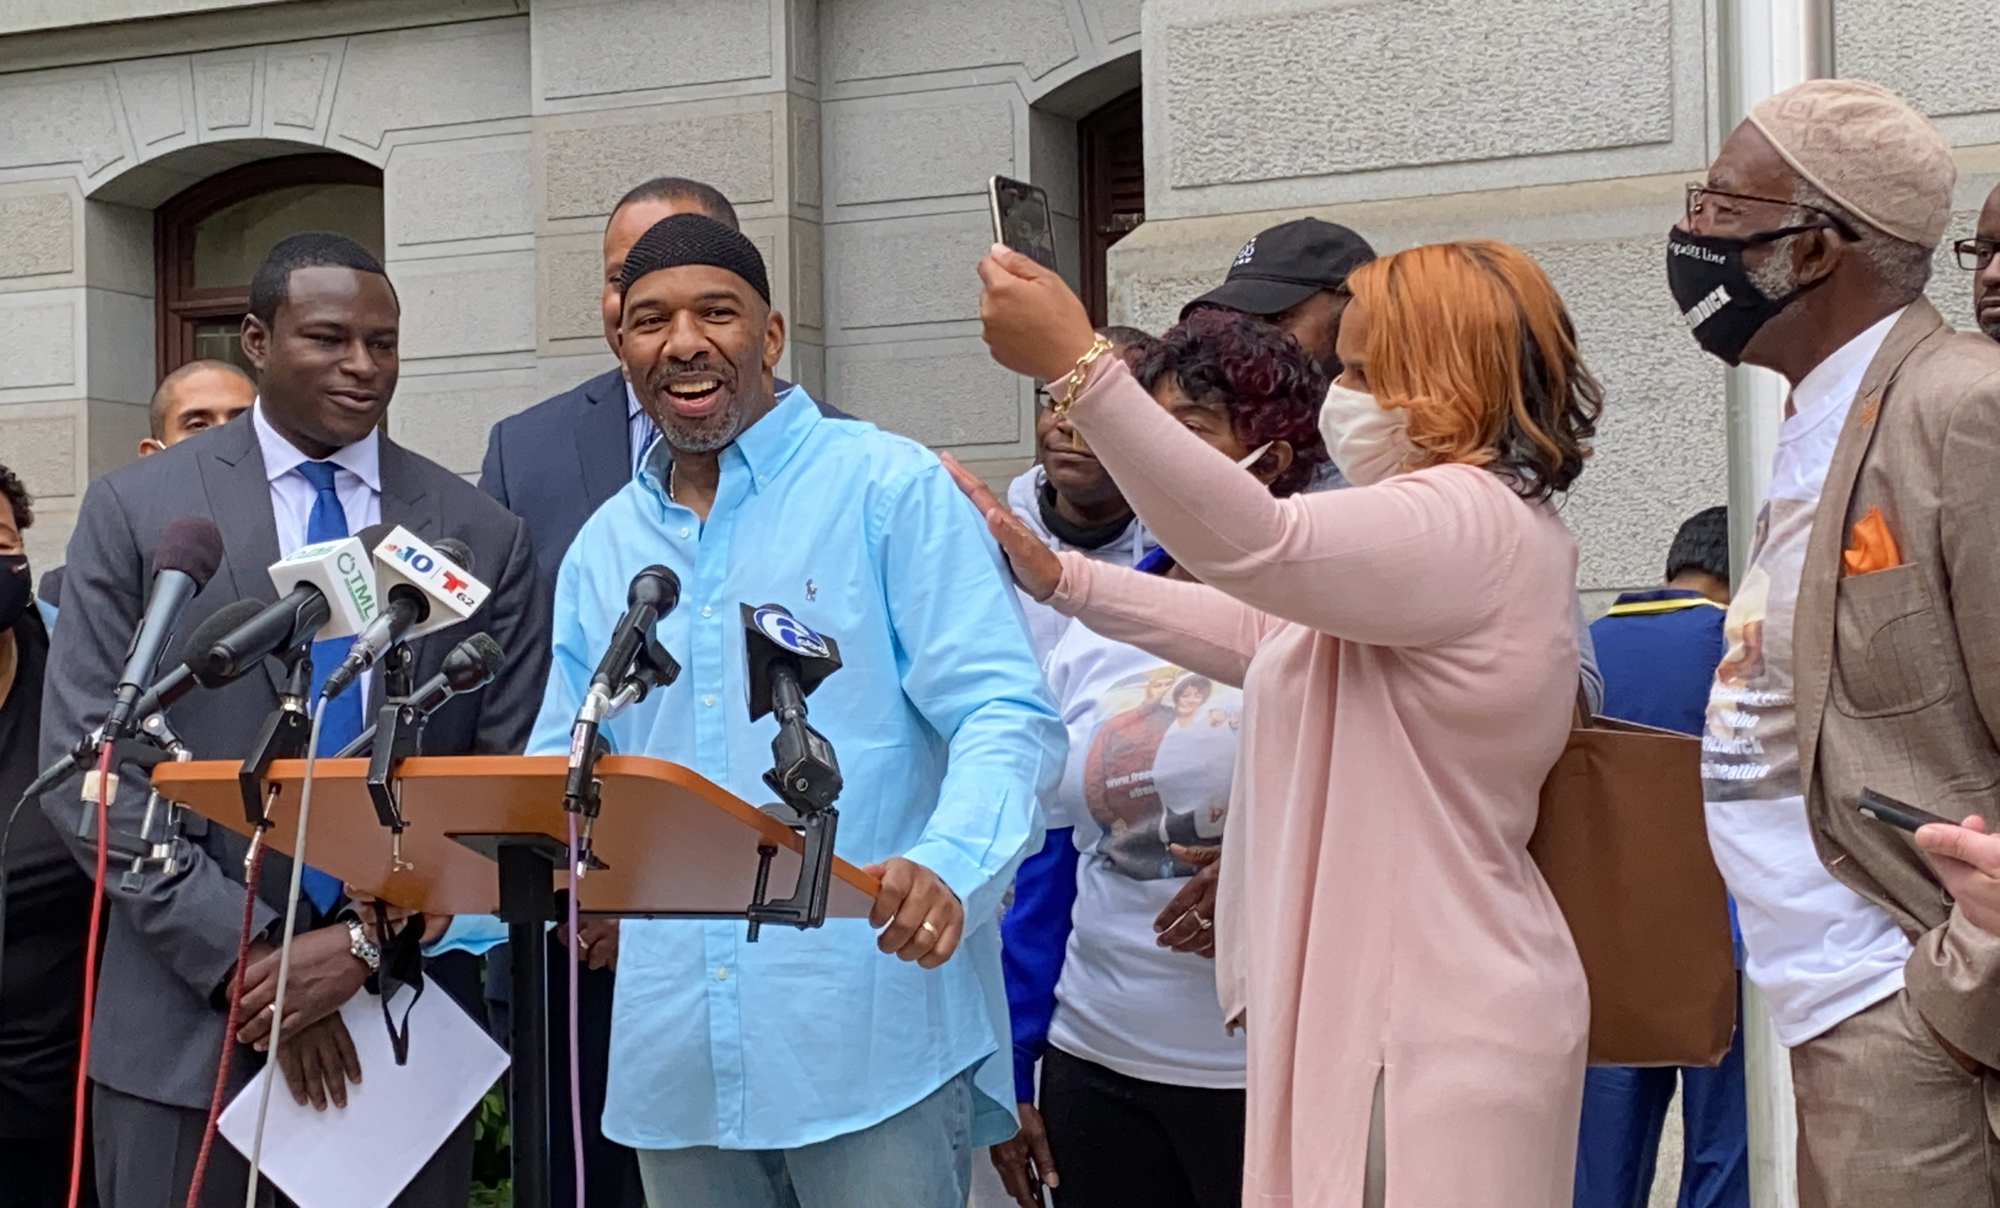 Eric Riddick smiles while speaking at a press conference podium, surrounded by his family and legal team.